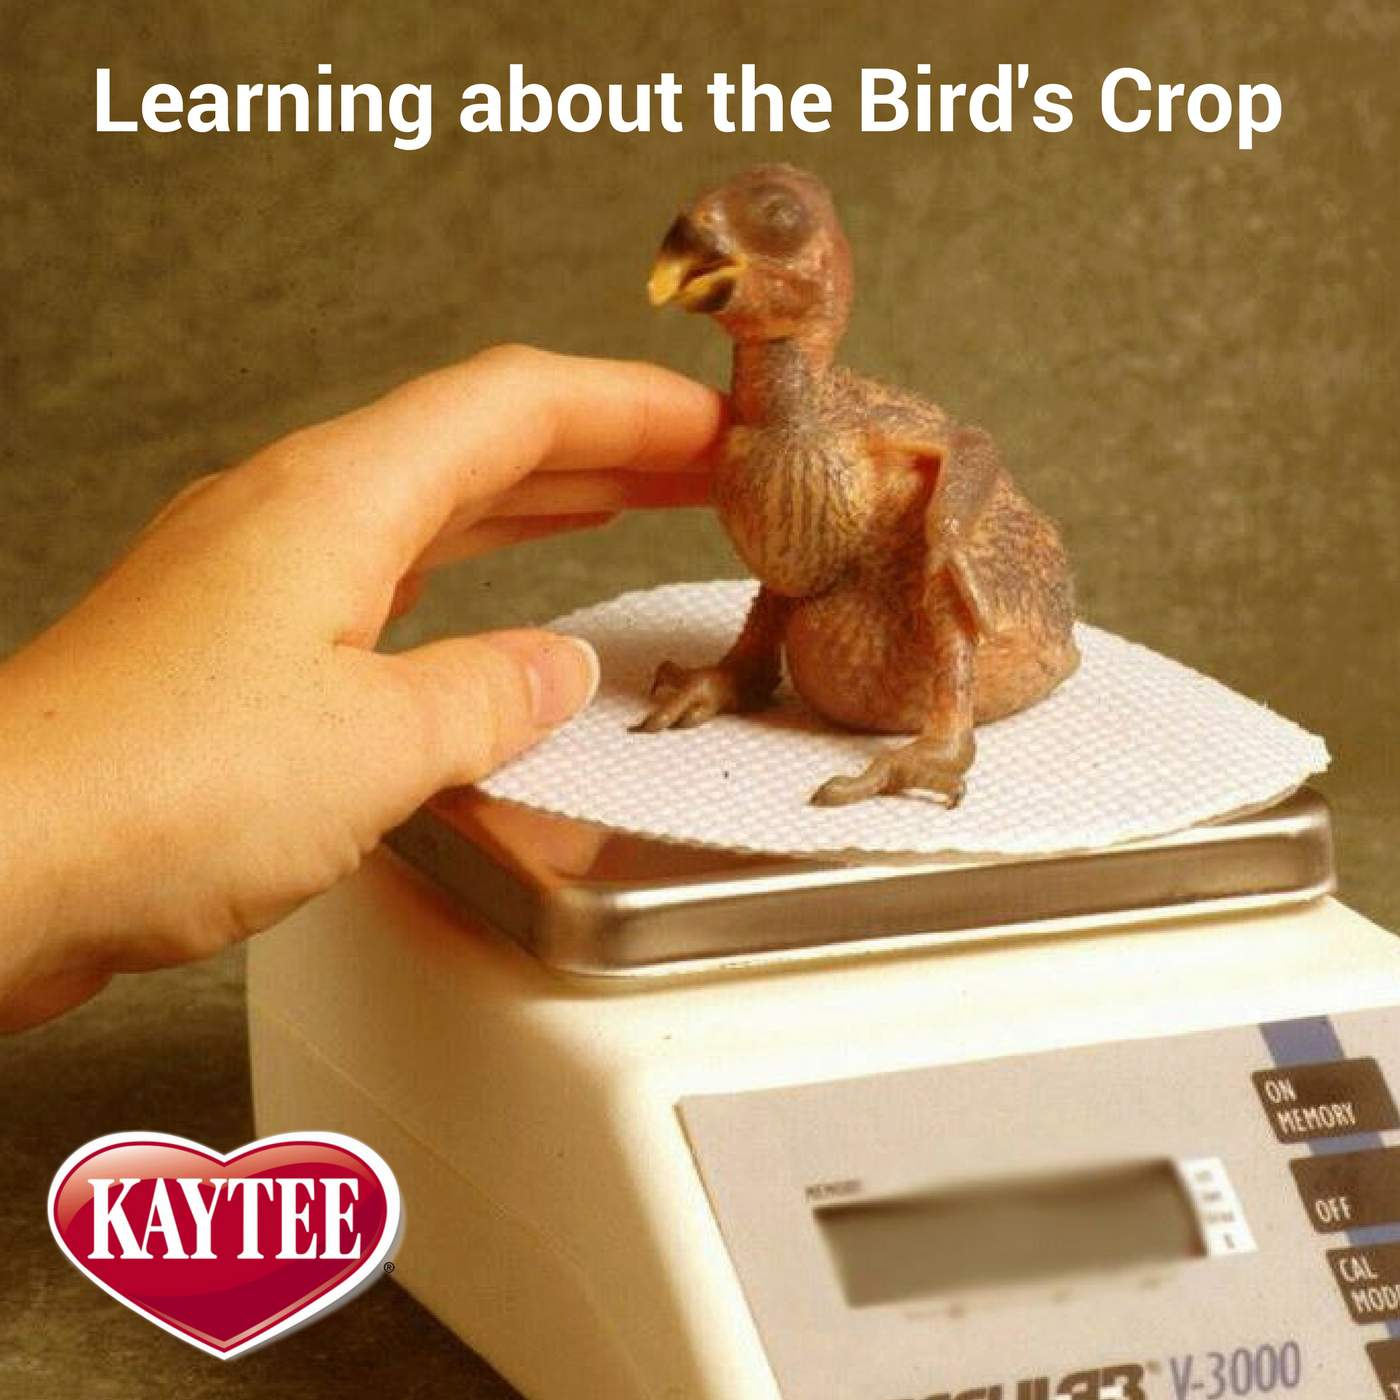 Learning about Bird Crops